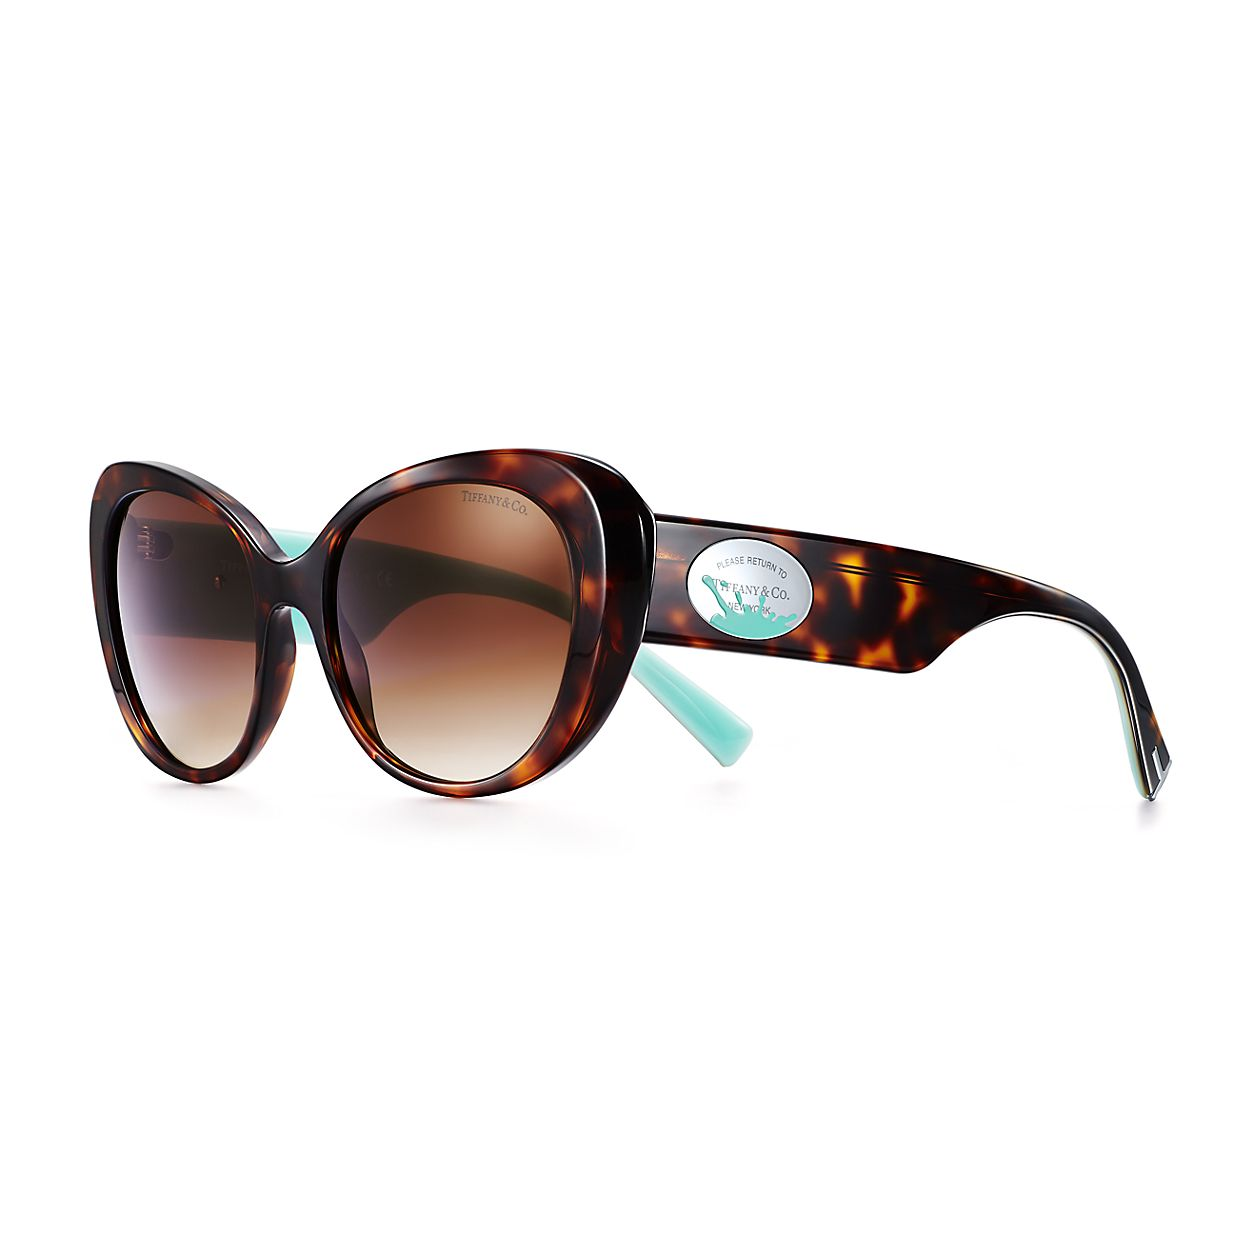 419516d6be9 Return to Tiffany® Color Splash oval sunglasses in acetate ...